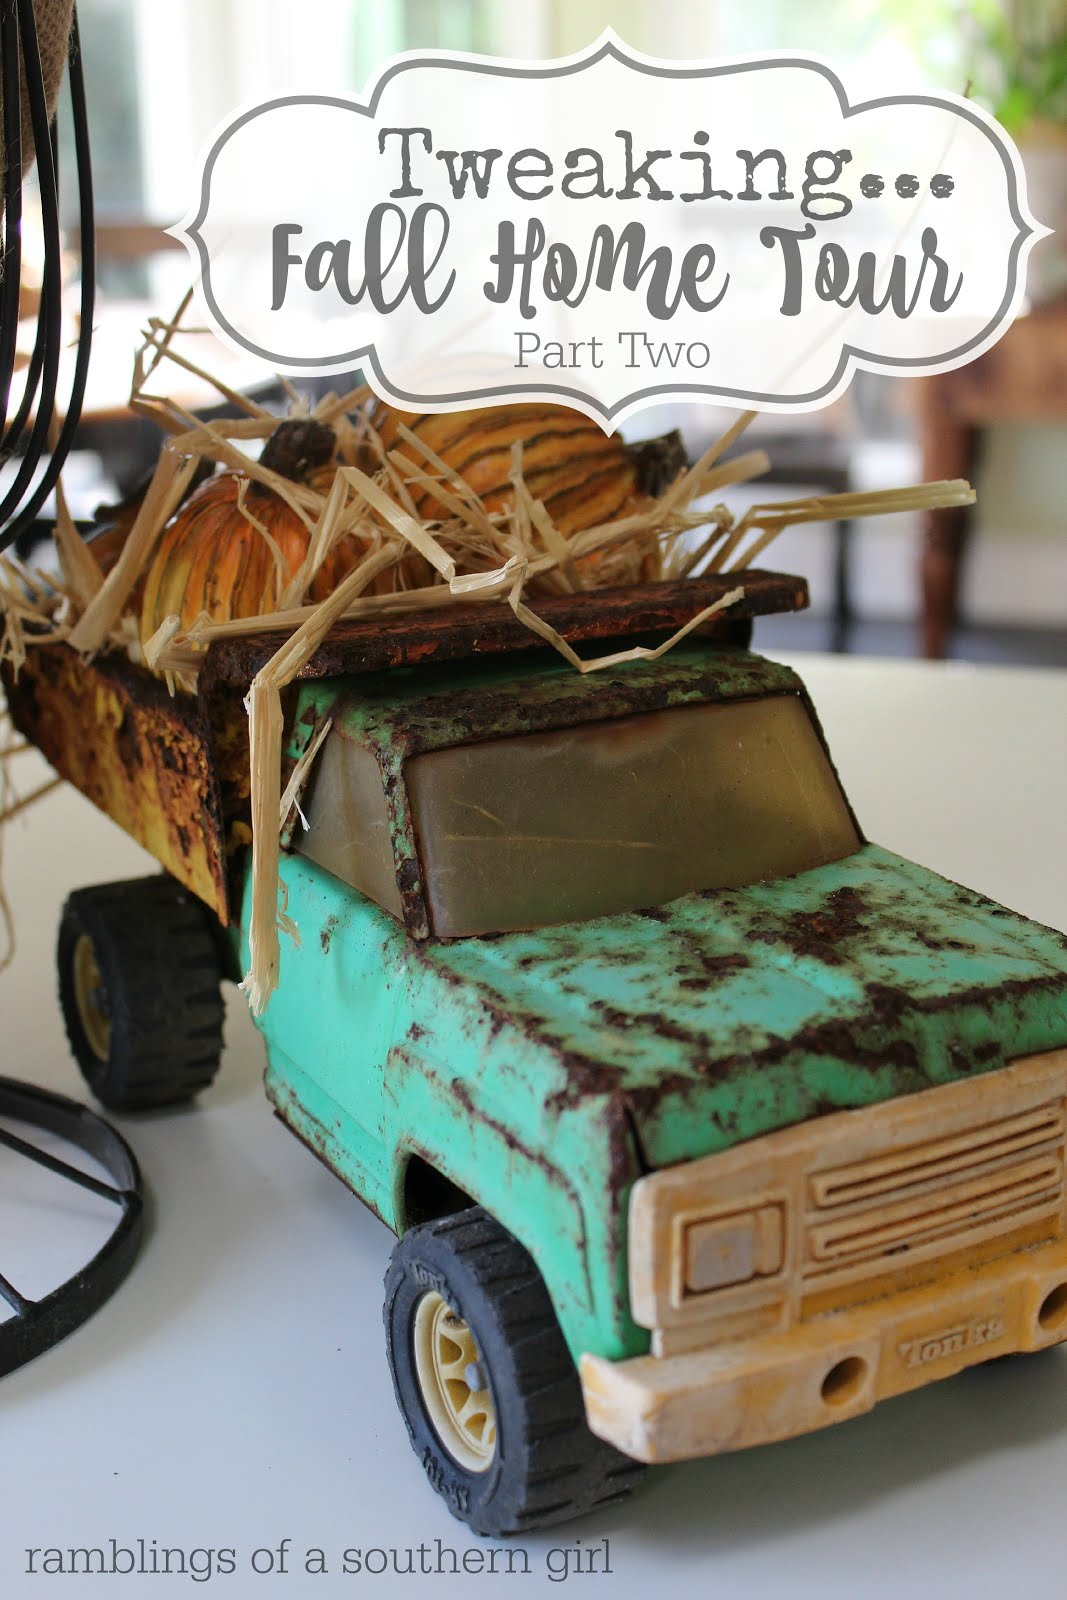 Tweaking... Fall Home Tour Part Two